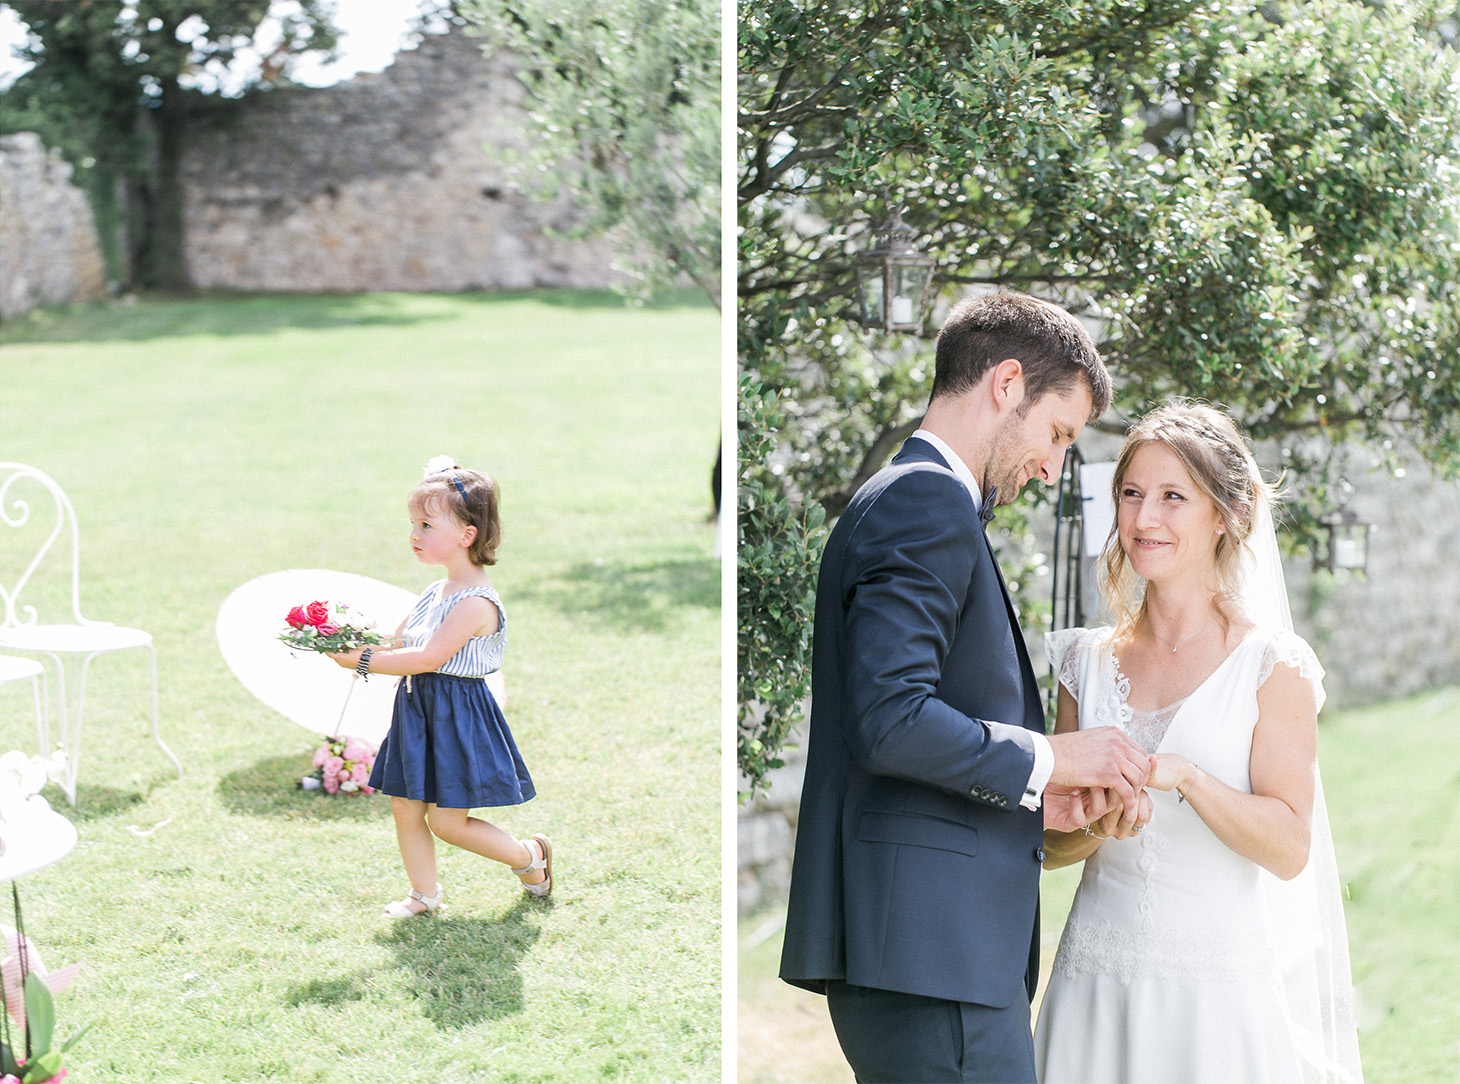 french_riviera_wedding_photographer-074 copie